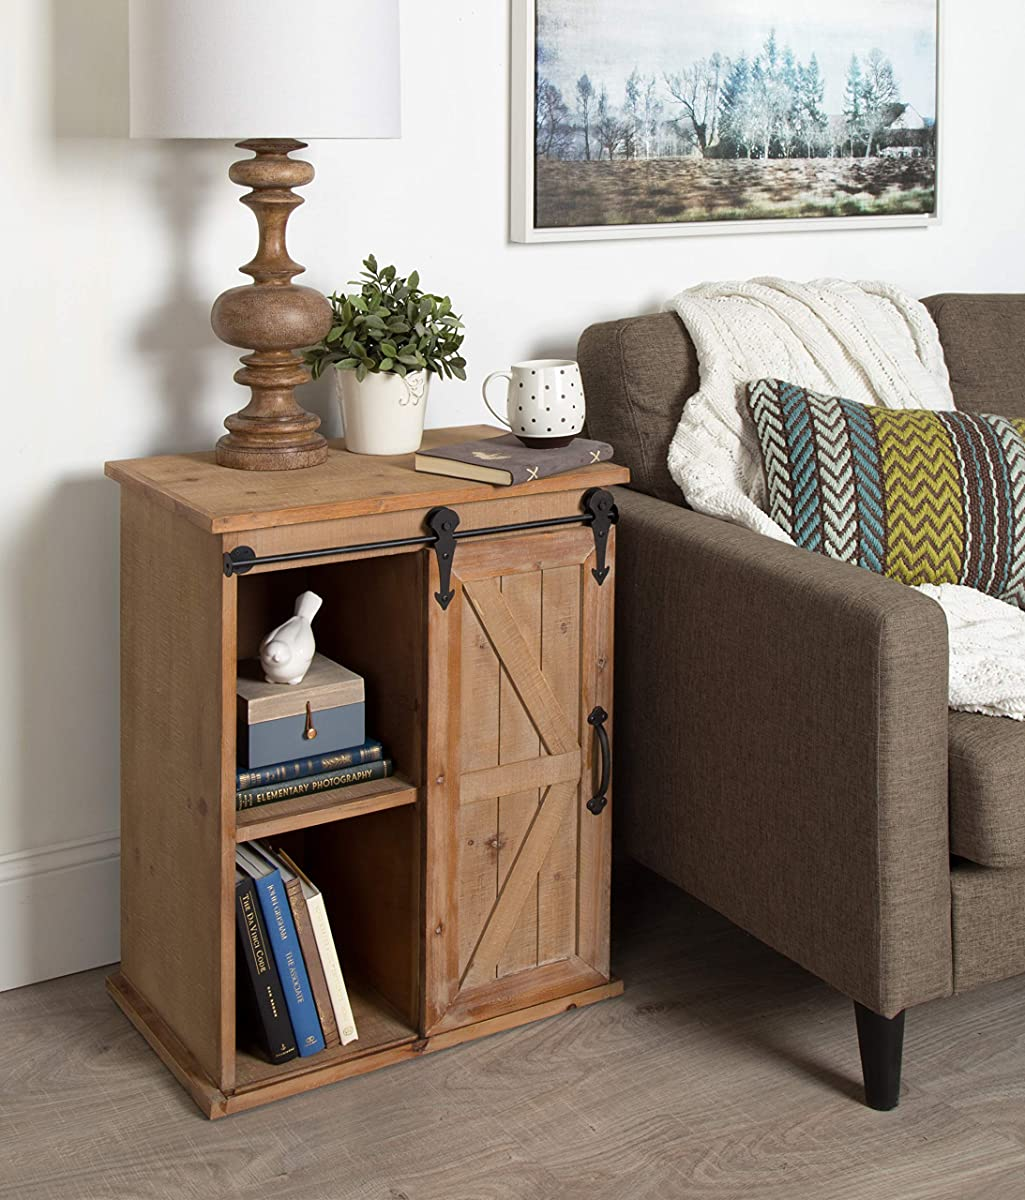 Kate and Laurel Cates Wooden Freestanding Storage Cabinet Side Accent Table Sliding Barn Door, Rustic Brown Finish